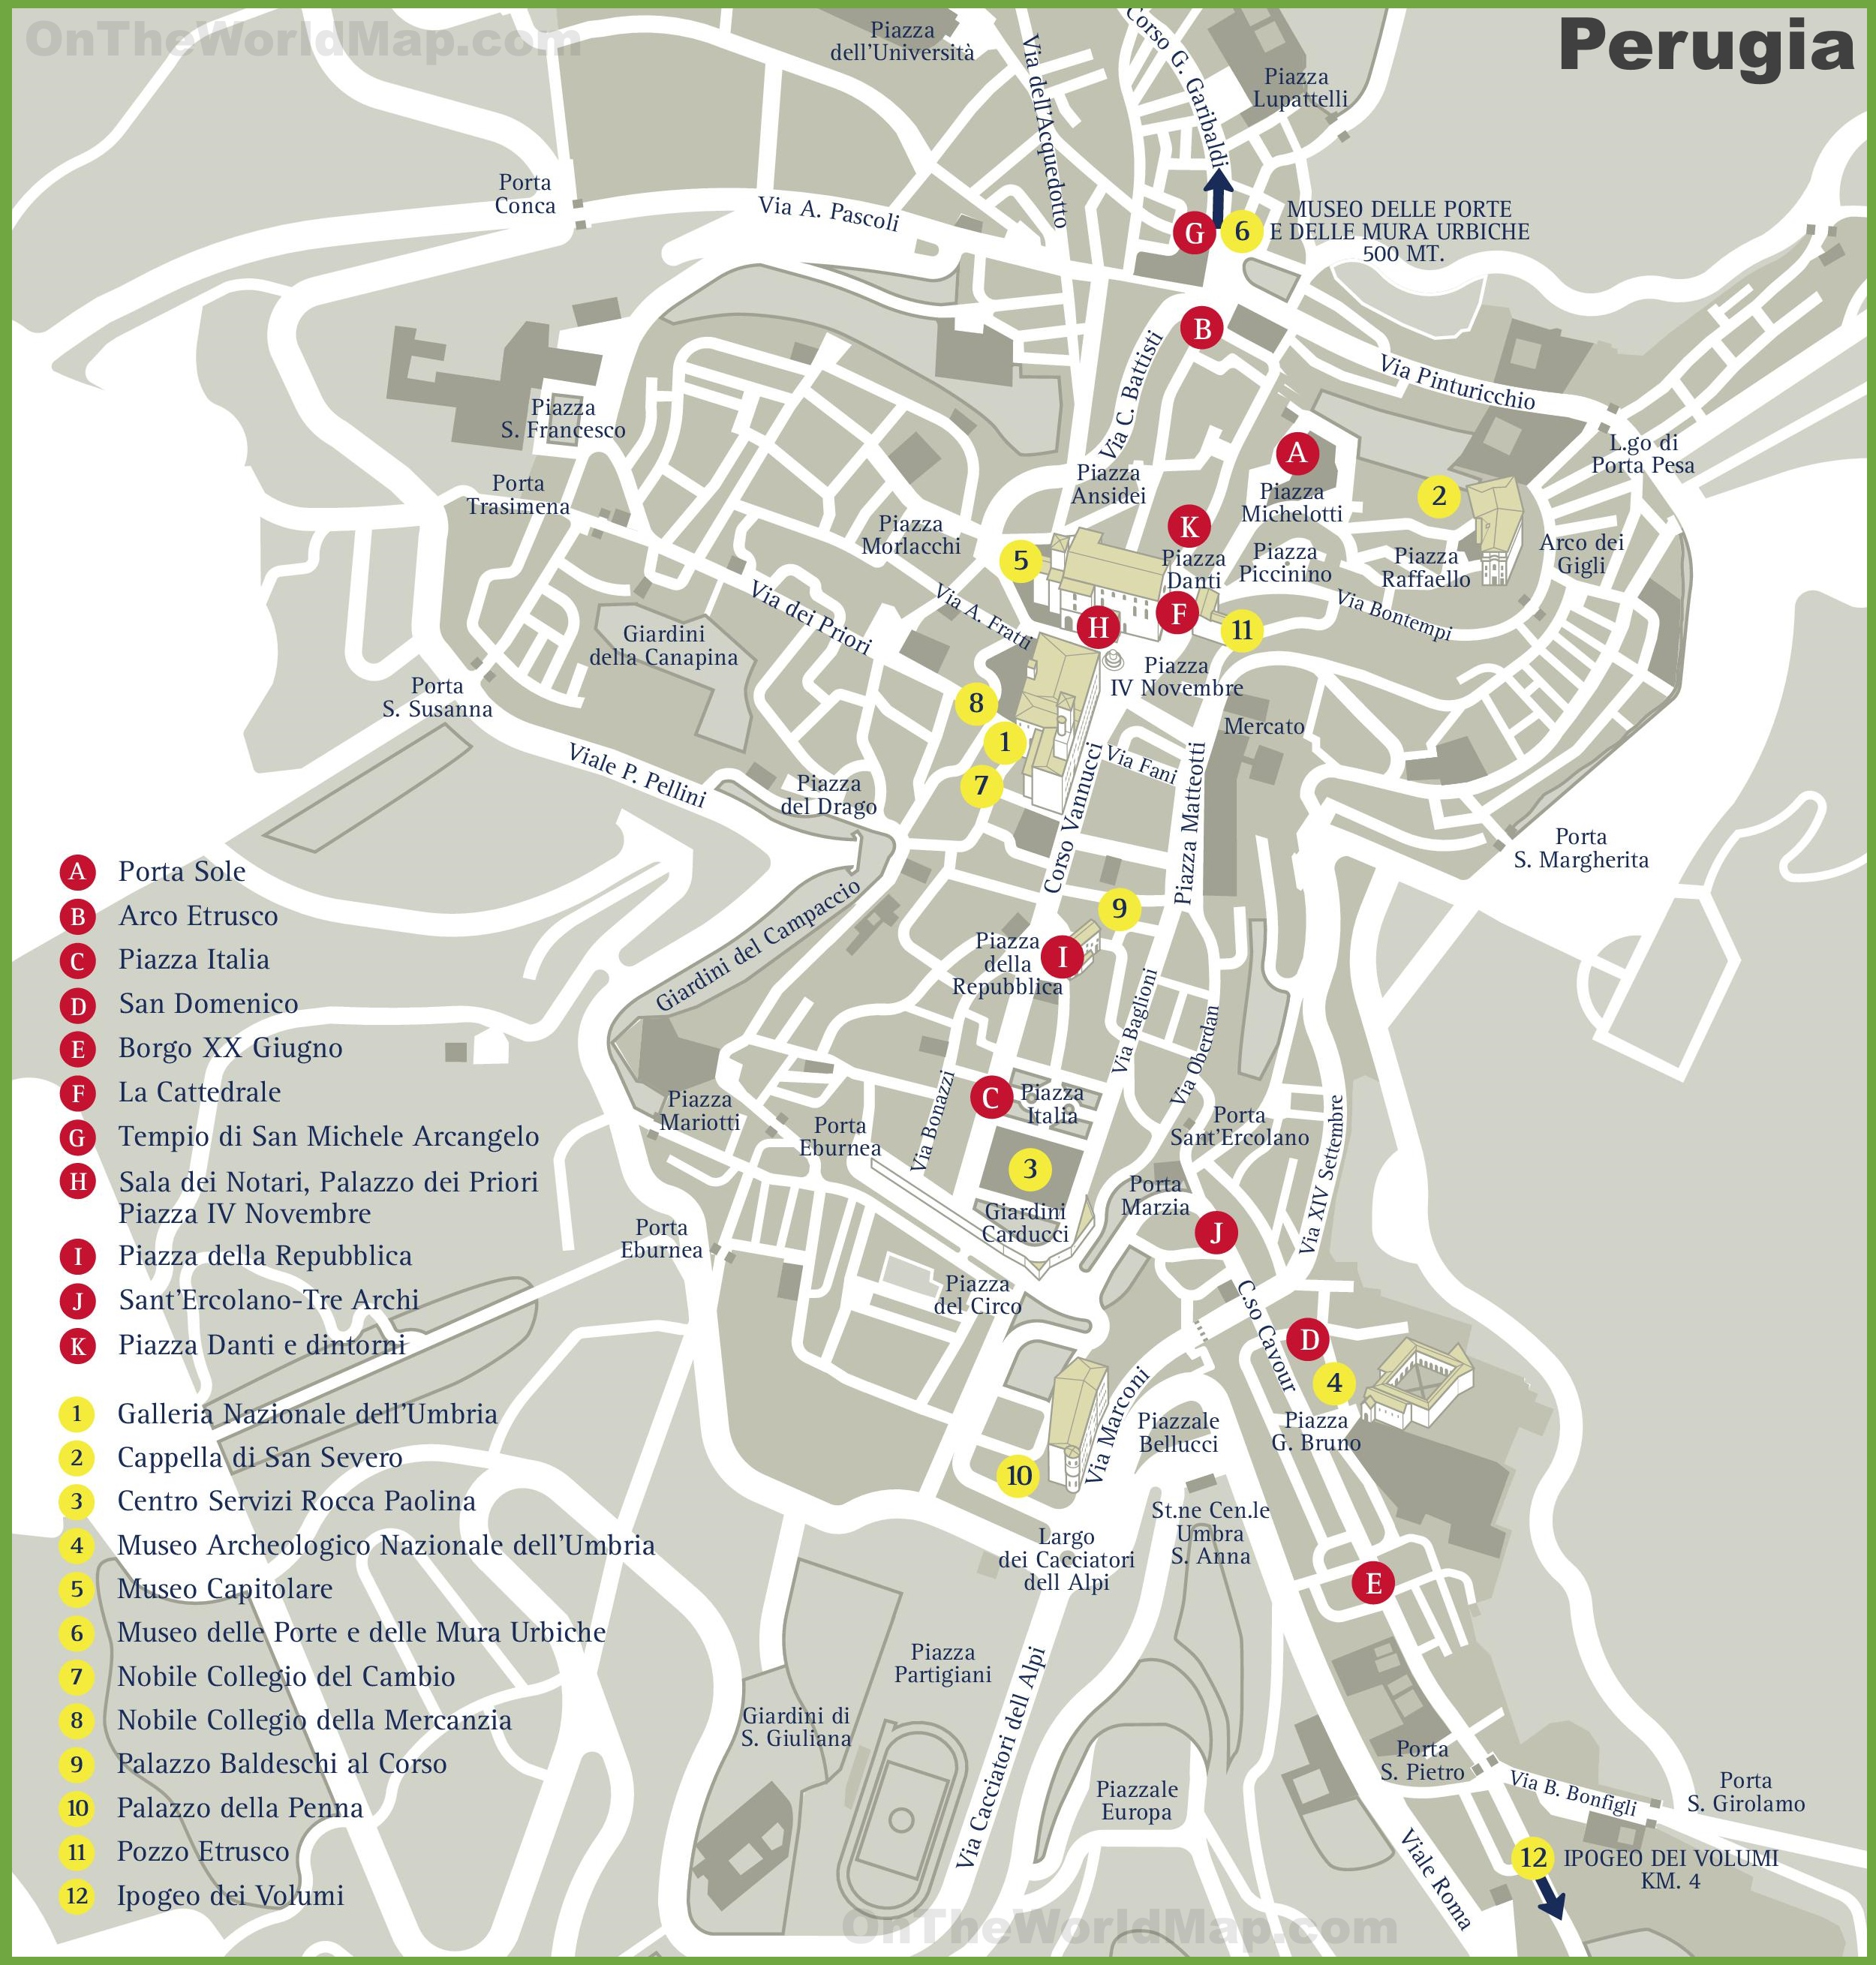 Perugia sightseeing map